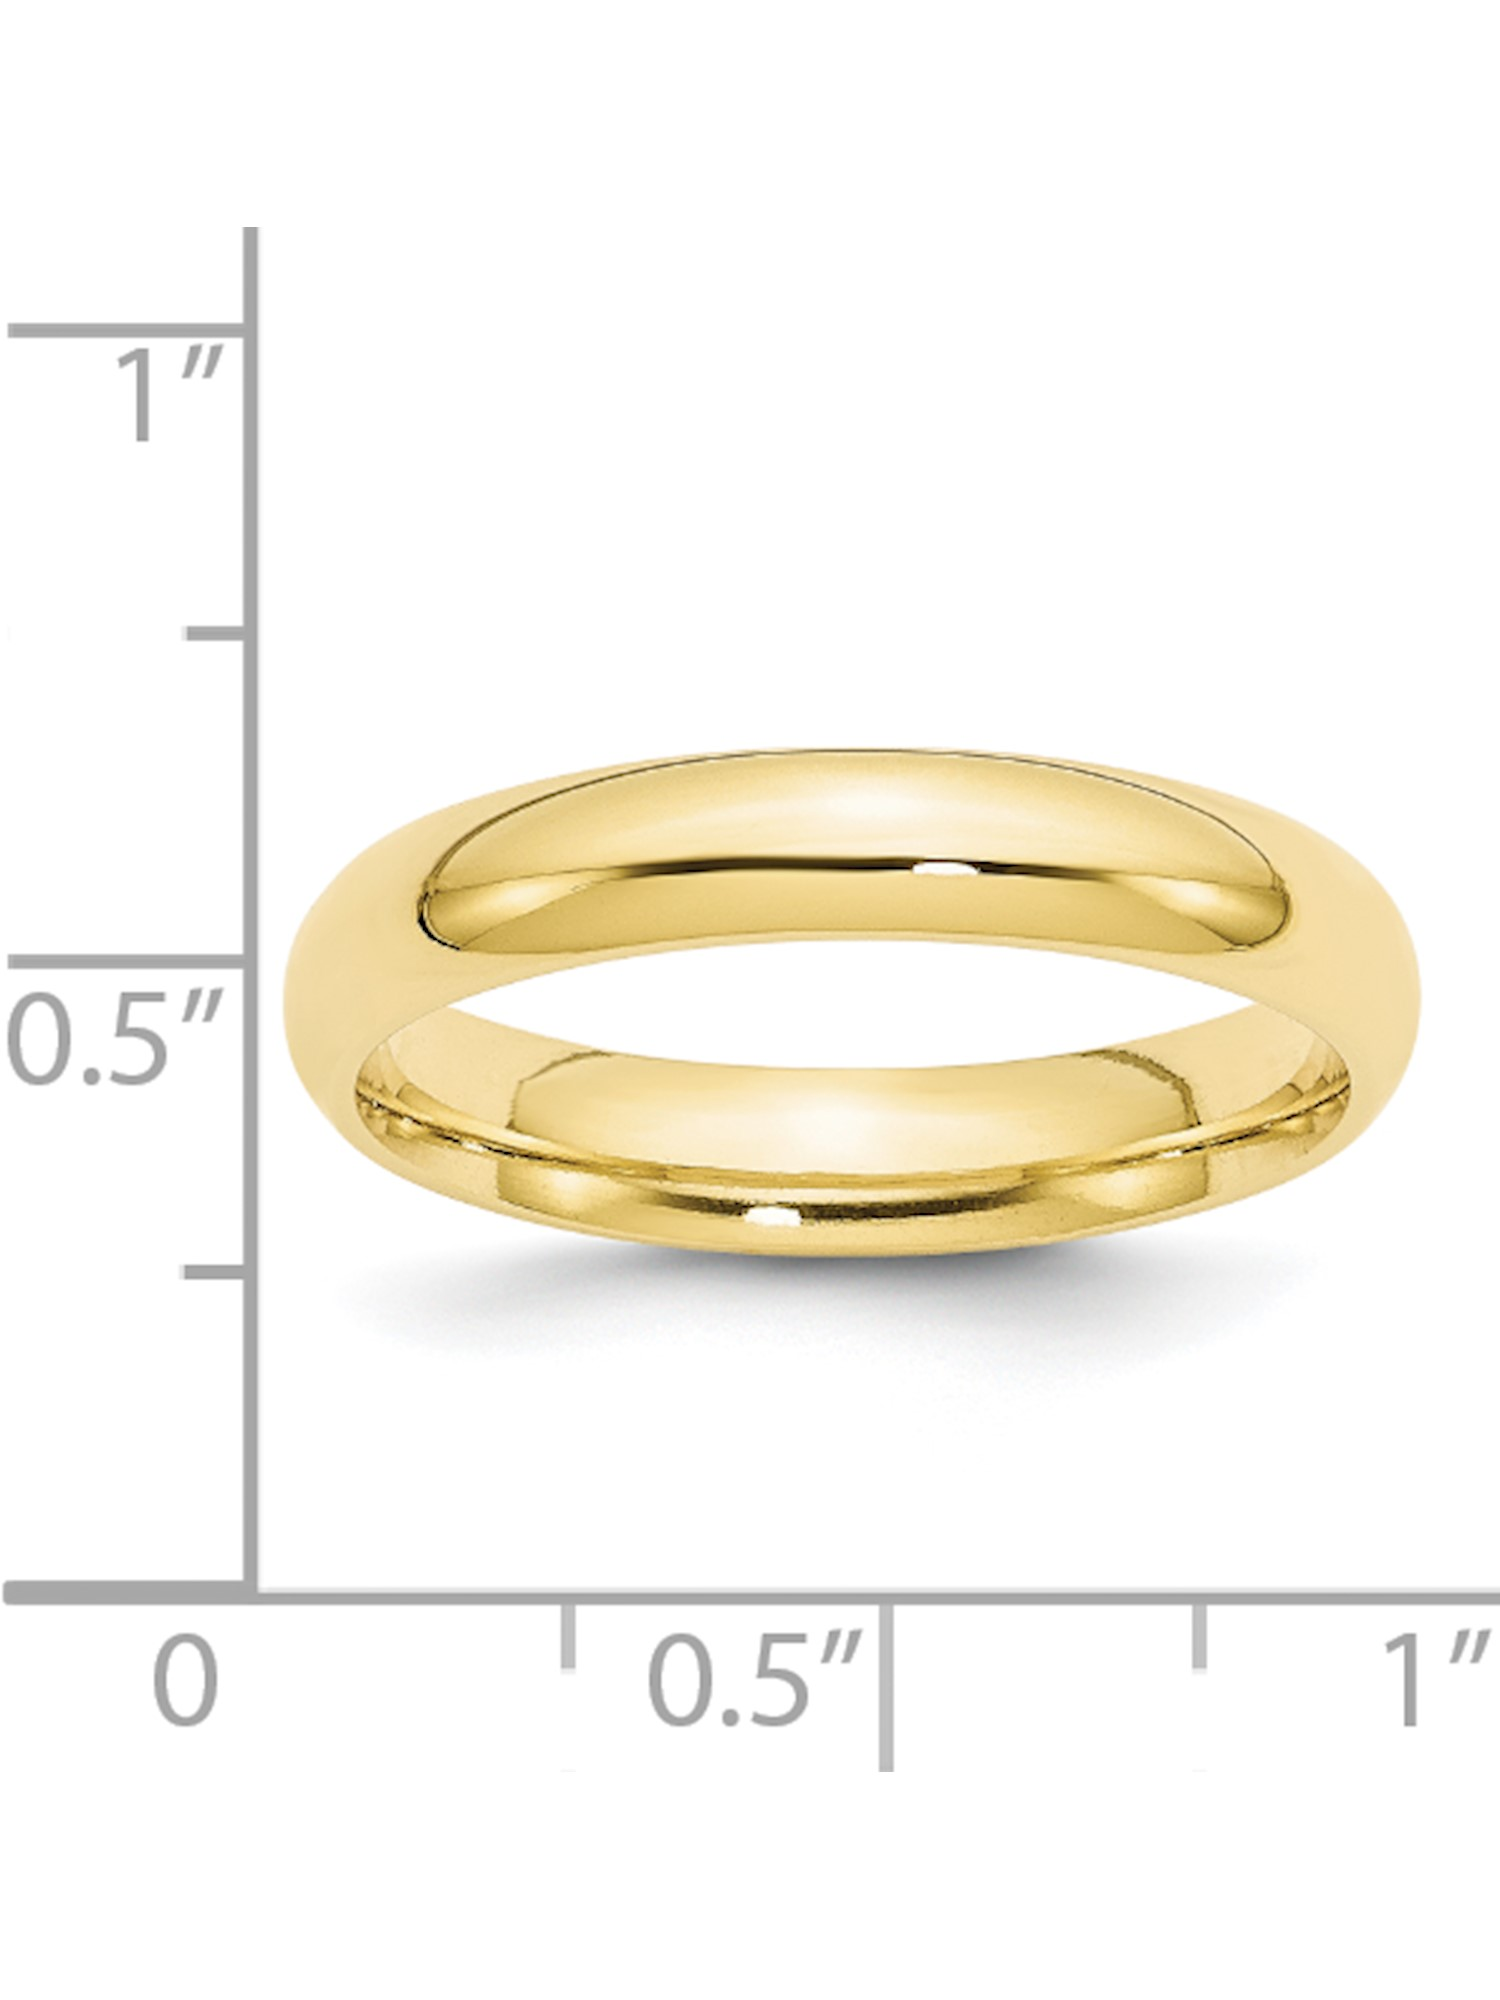 Solid 10k Yellow Gold 4mm Standard Comfort Fit Wedding Band